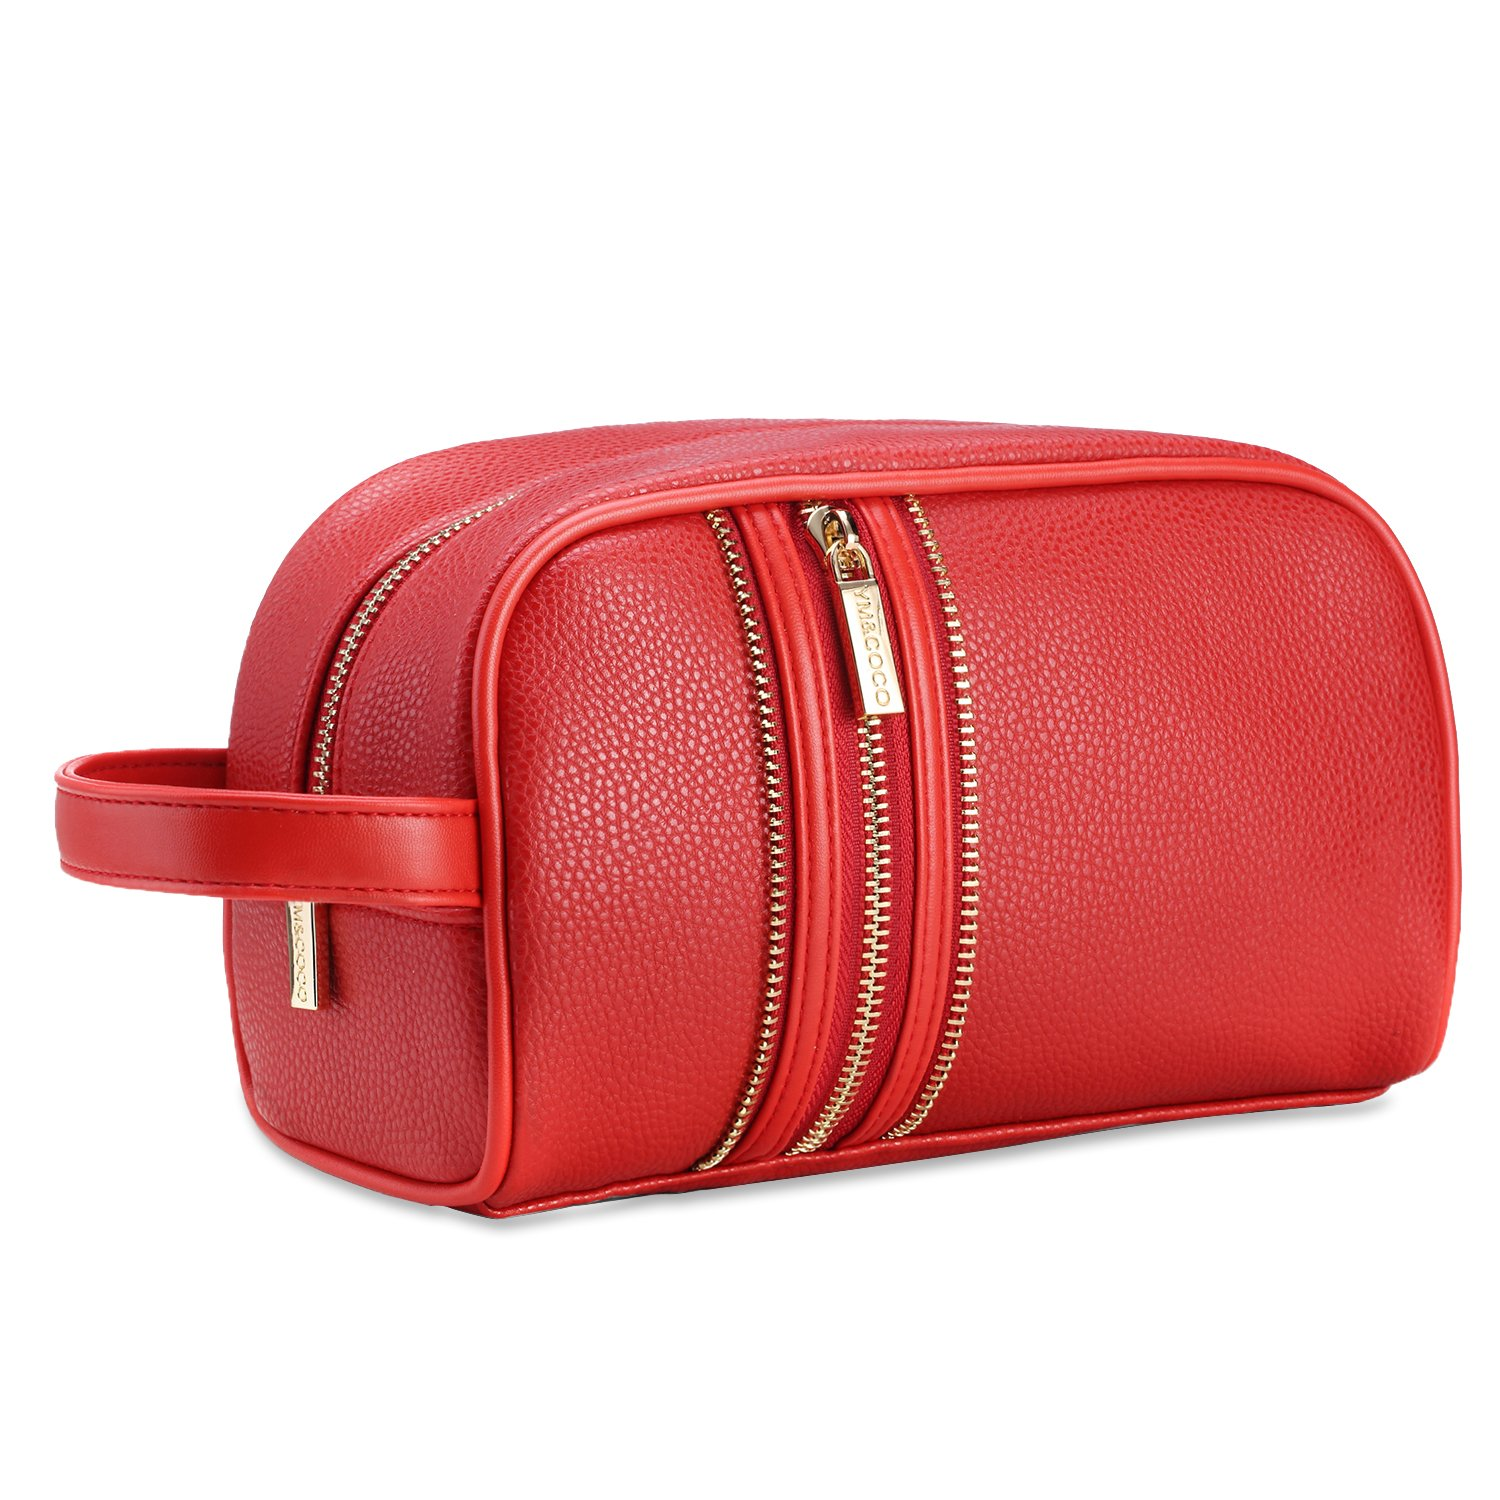 Leather Makeup Bag, Womens Small Bag Makeup Kit Handy Makeup Brush Pouch Case Red